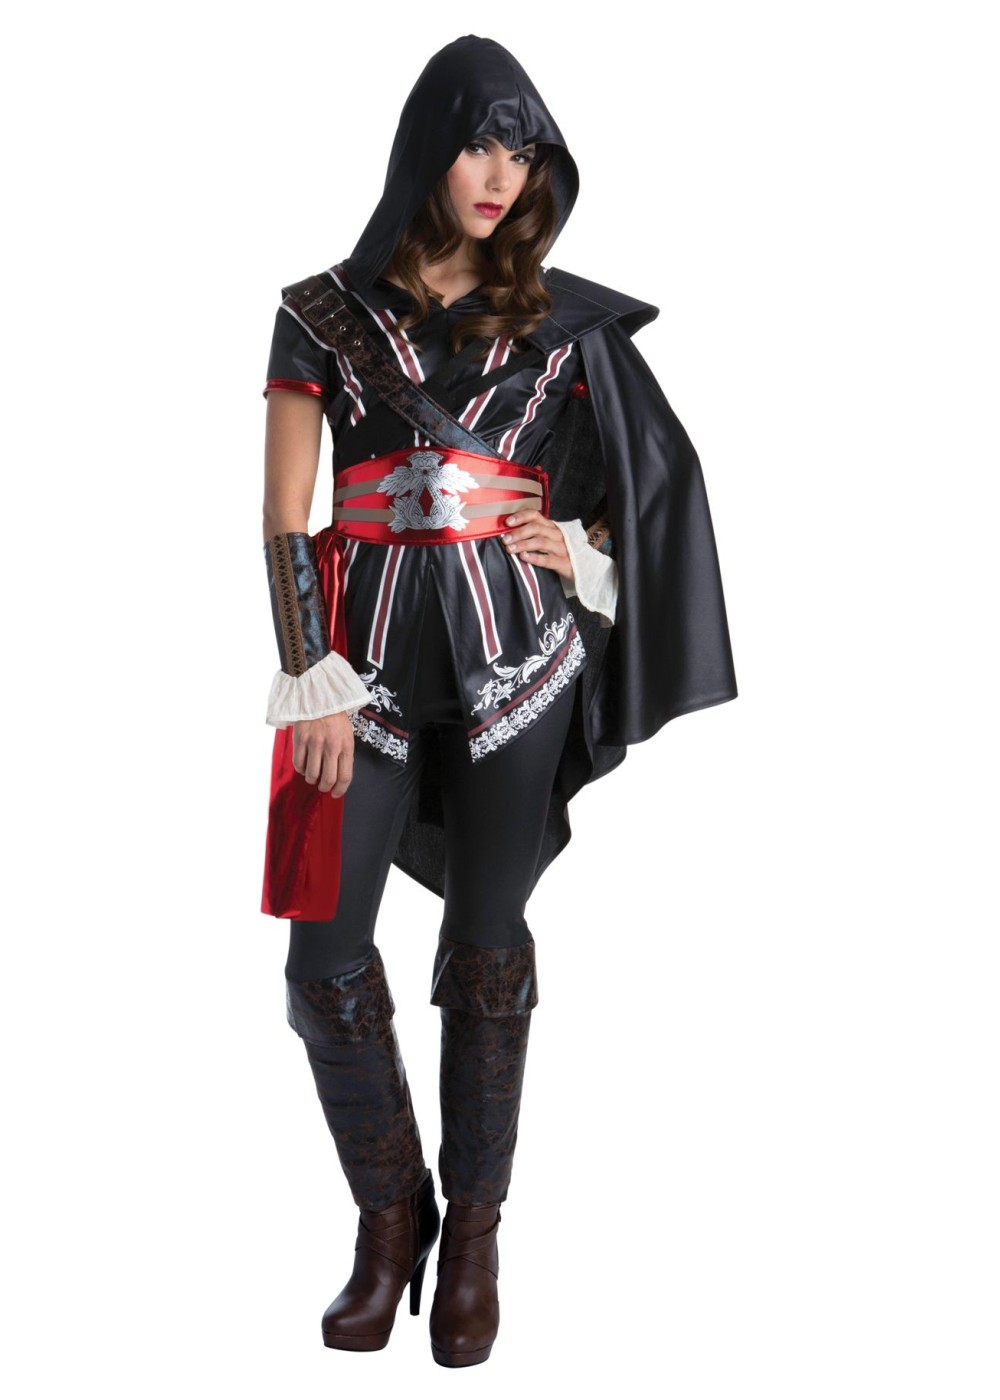 Assassins Creed Ezio Auditore Female Costume Video Game Costumes